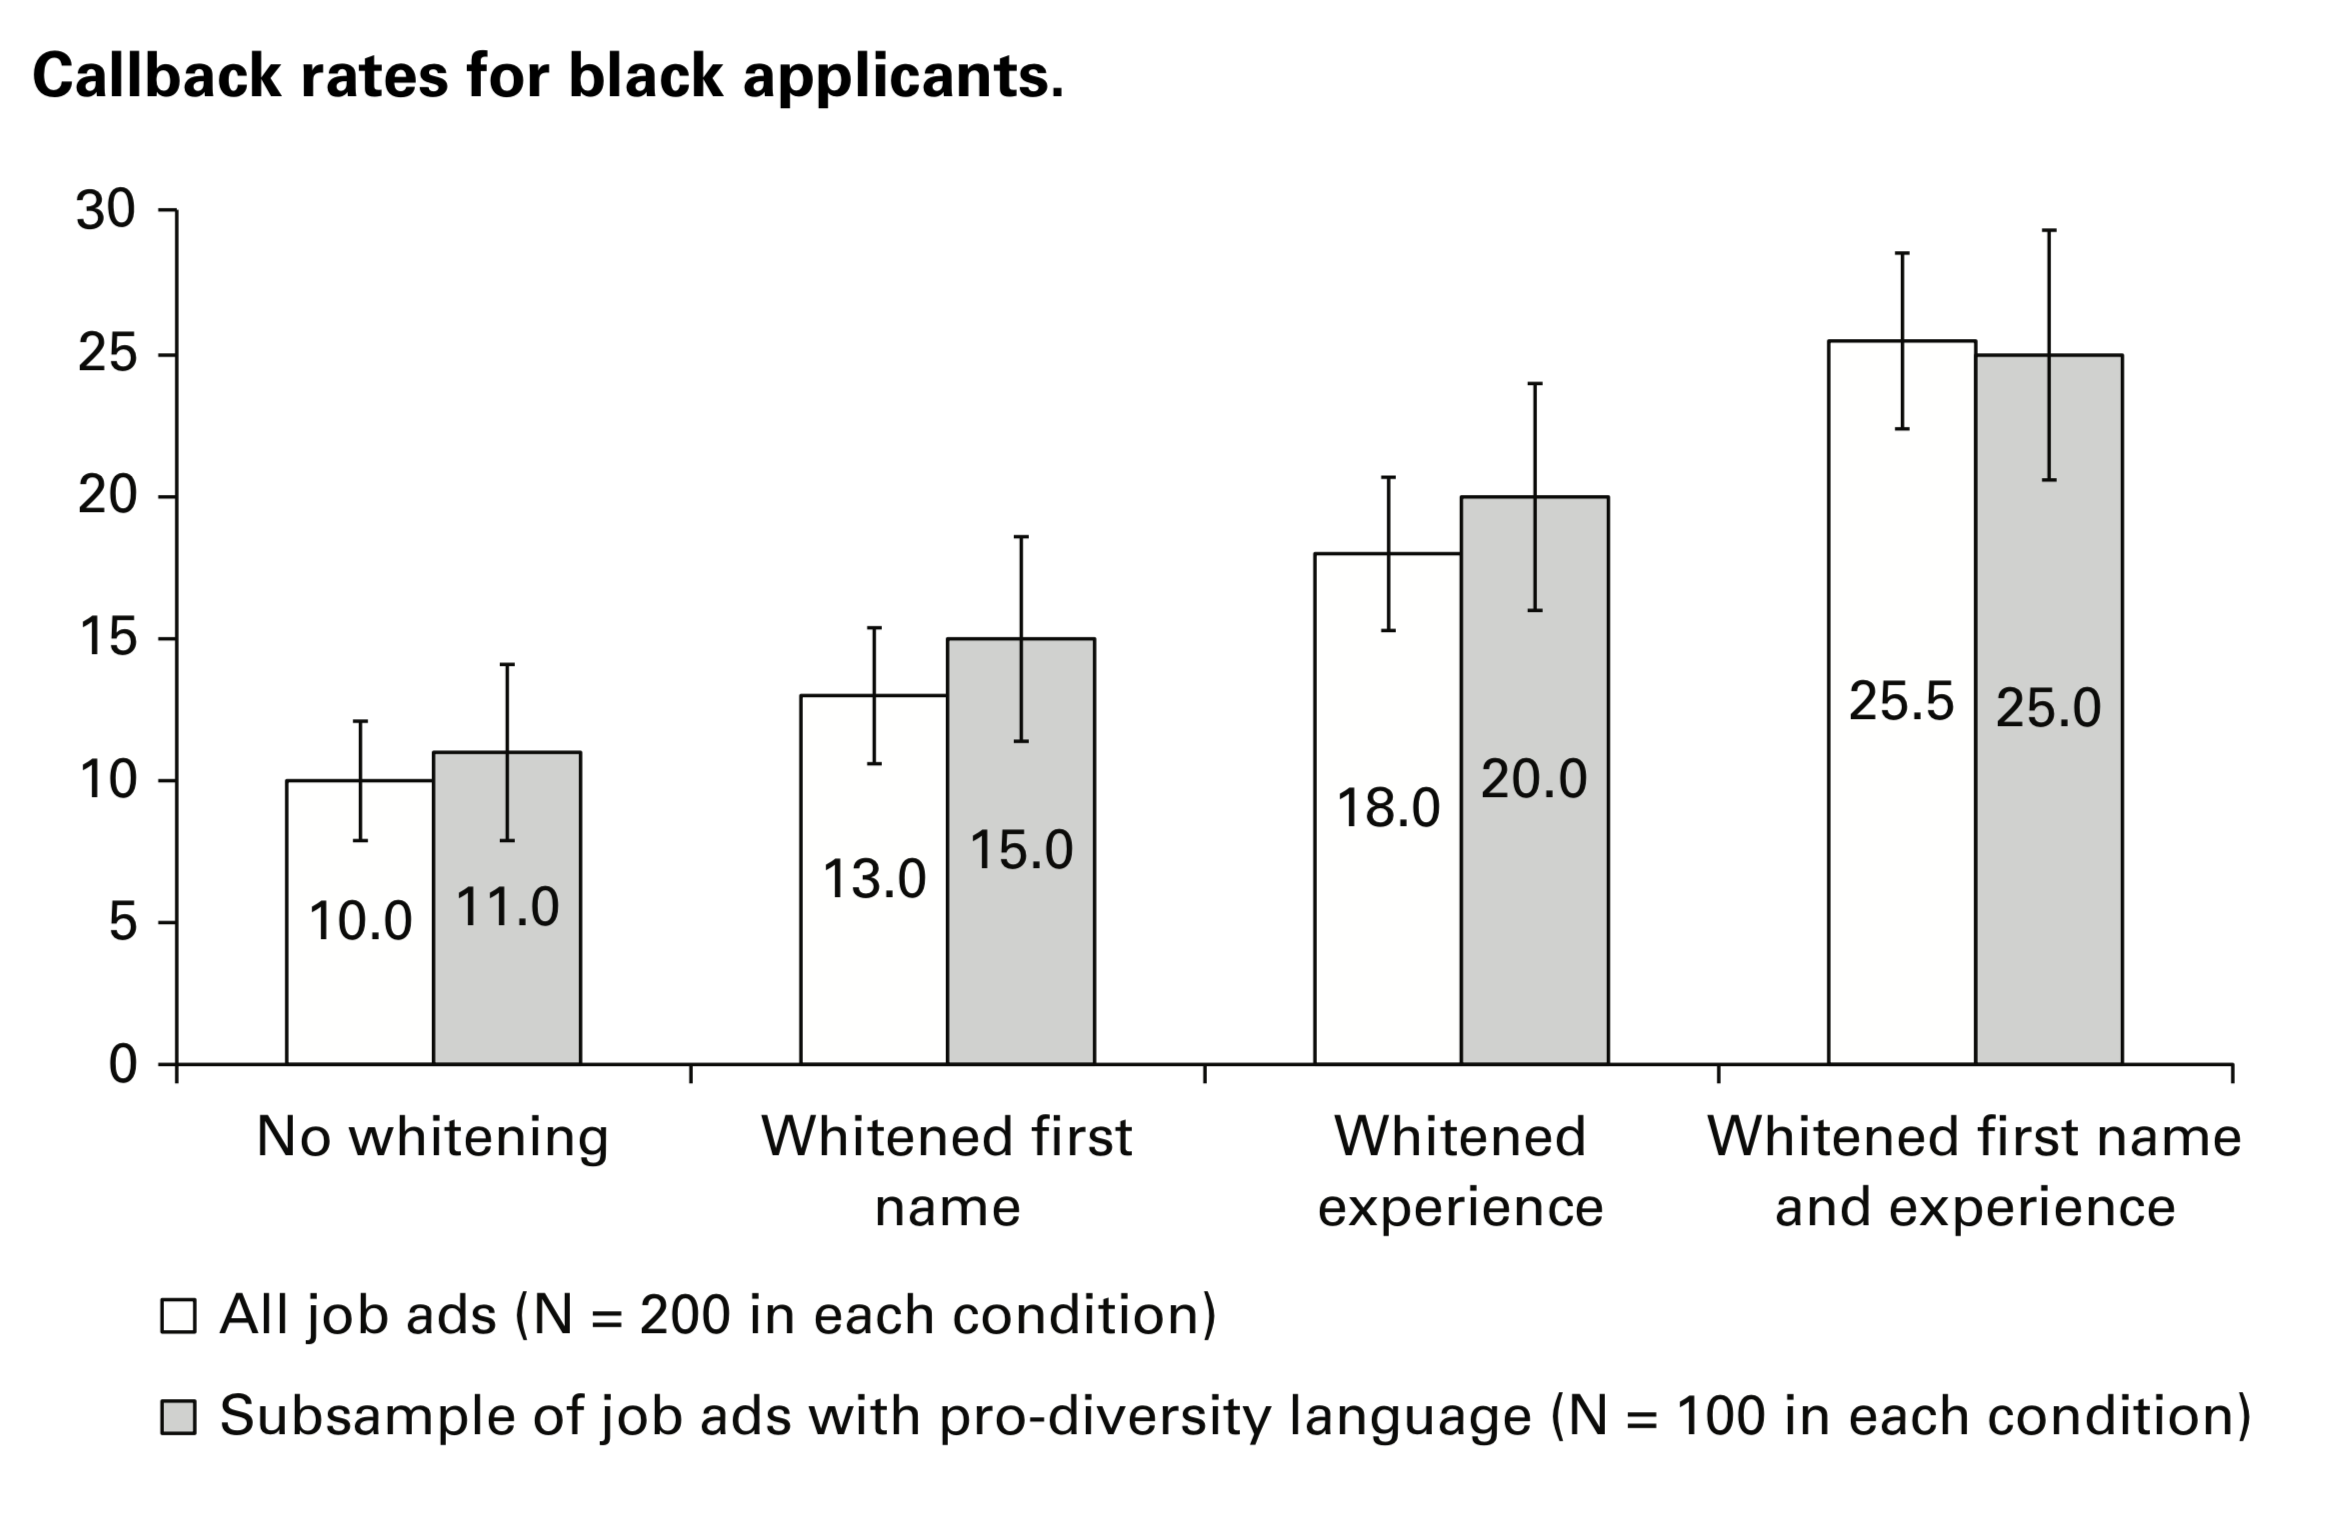 Graphs showing how the callback rates change for Black applicants when names and/or experience are whitened